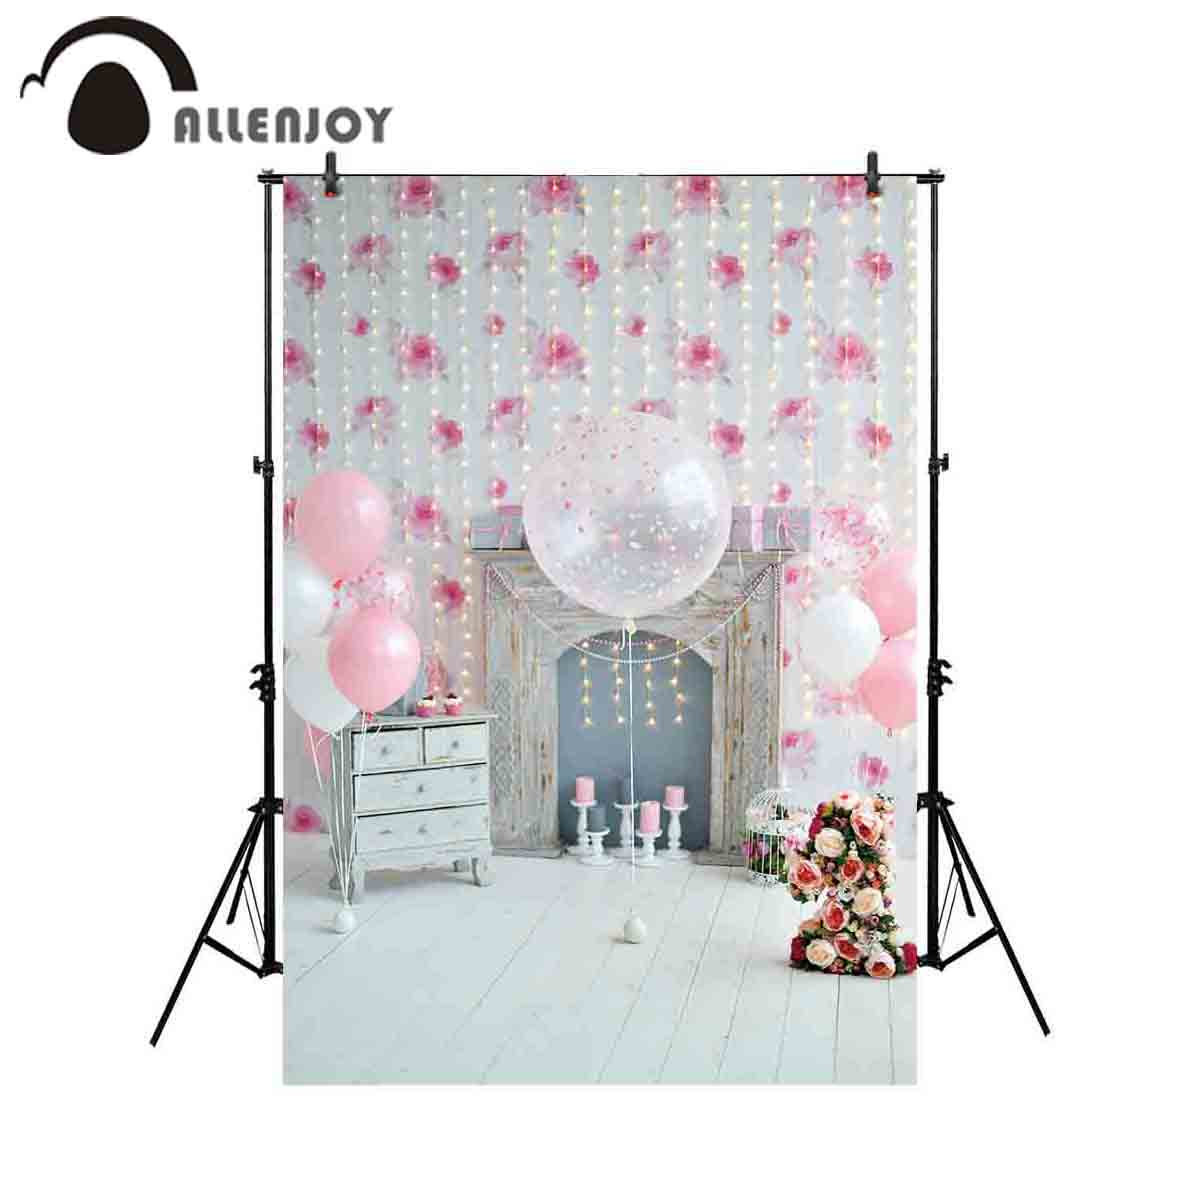 Allenjoy Photography Backdrop Cake Smash Balloon Pink Girl 1st Birthday Background Photocall Photoshoot Studio Photobooth